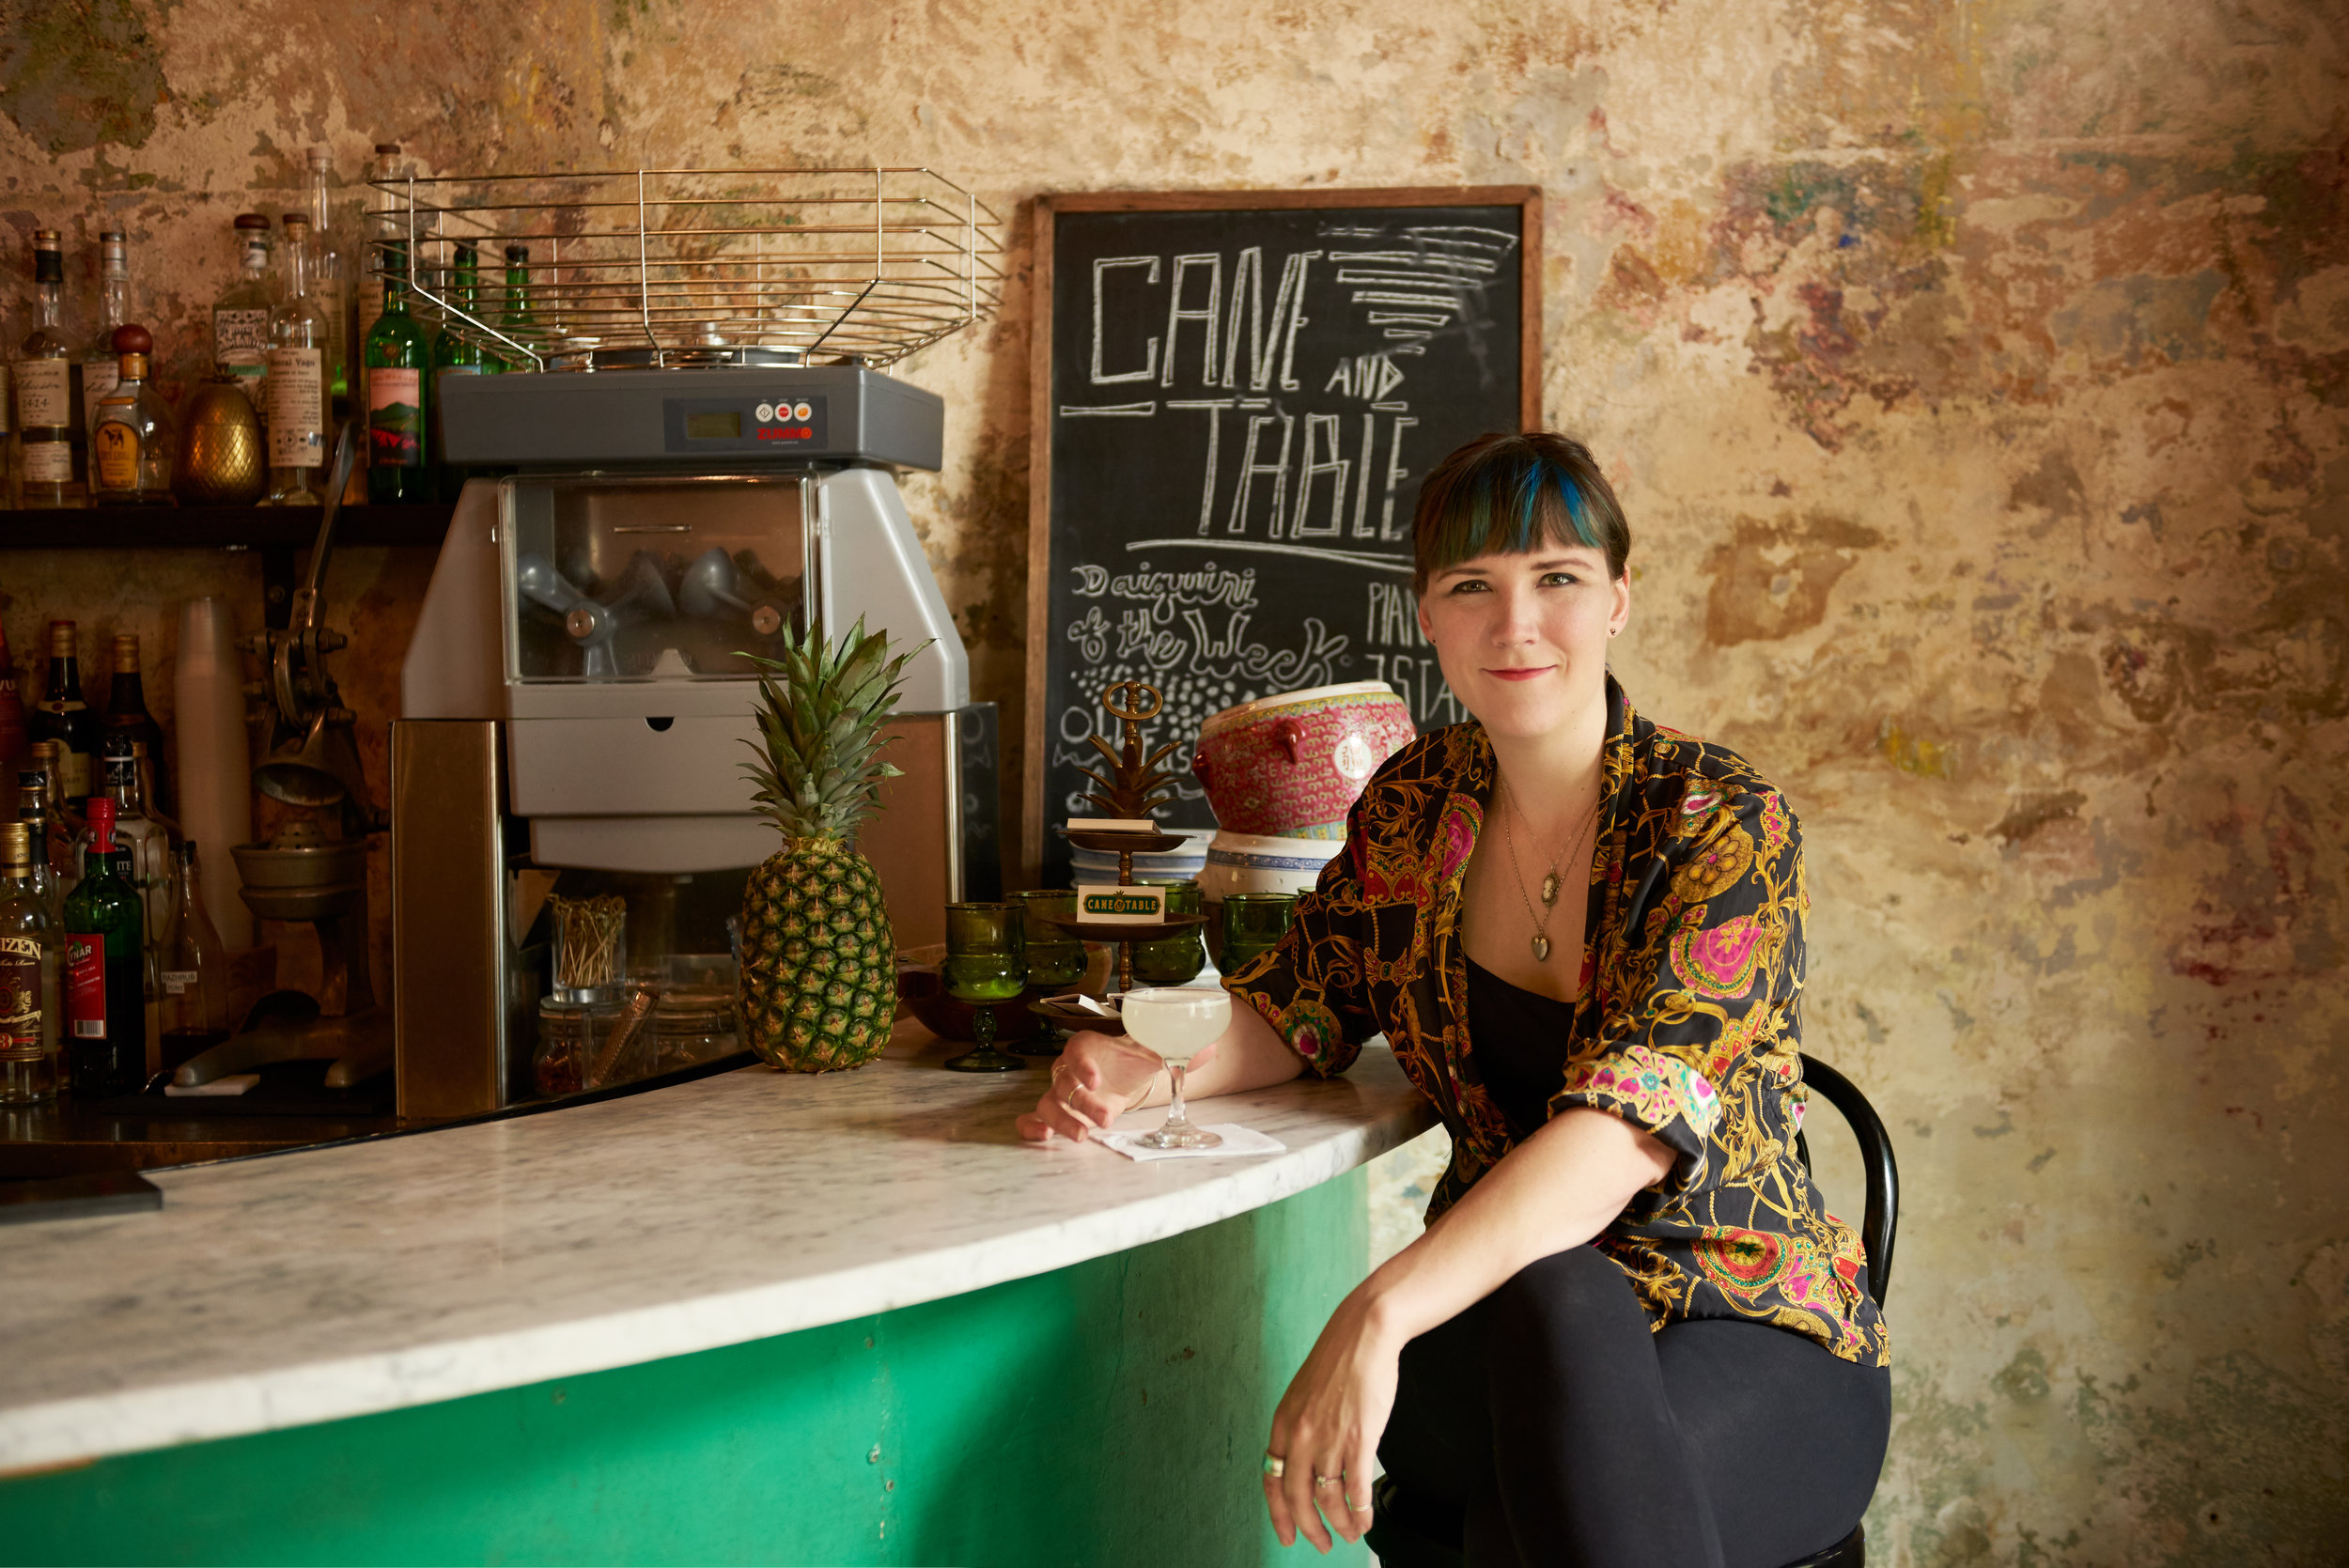 Alexandra Anderson, 28, bartender at Cure and Cane & Table shot by new orleans based photographer Craig Mulcahy. Shoot for Zagat/Google's 30 under 30 in NOLA.